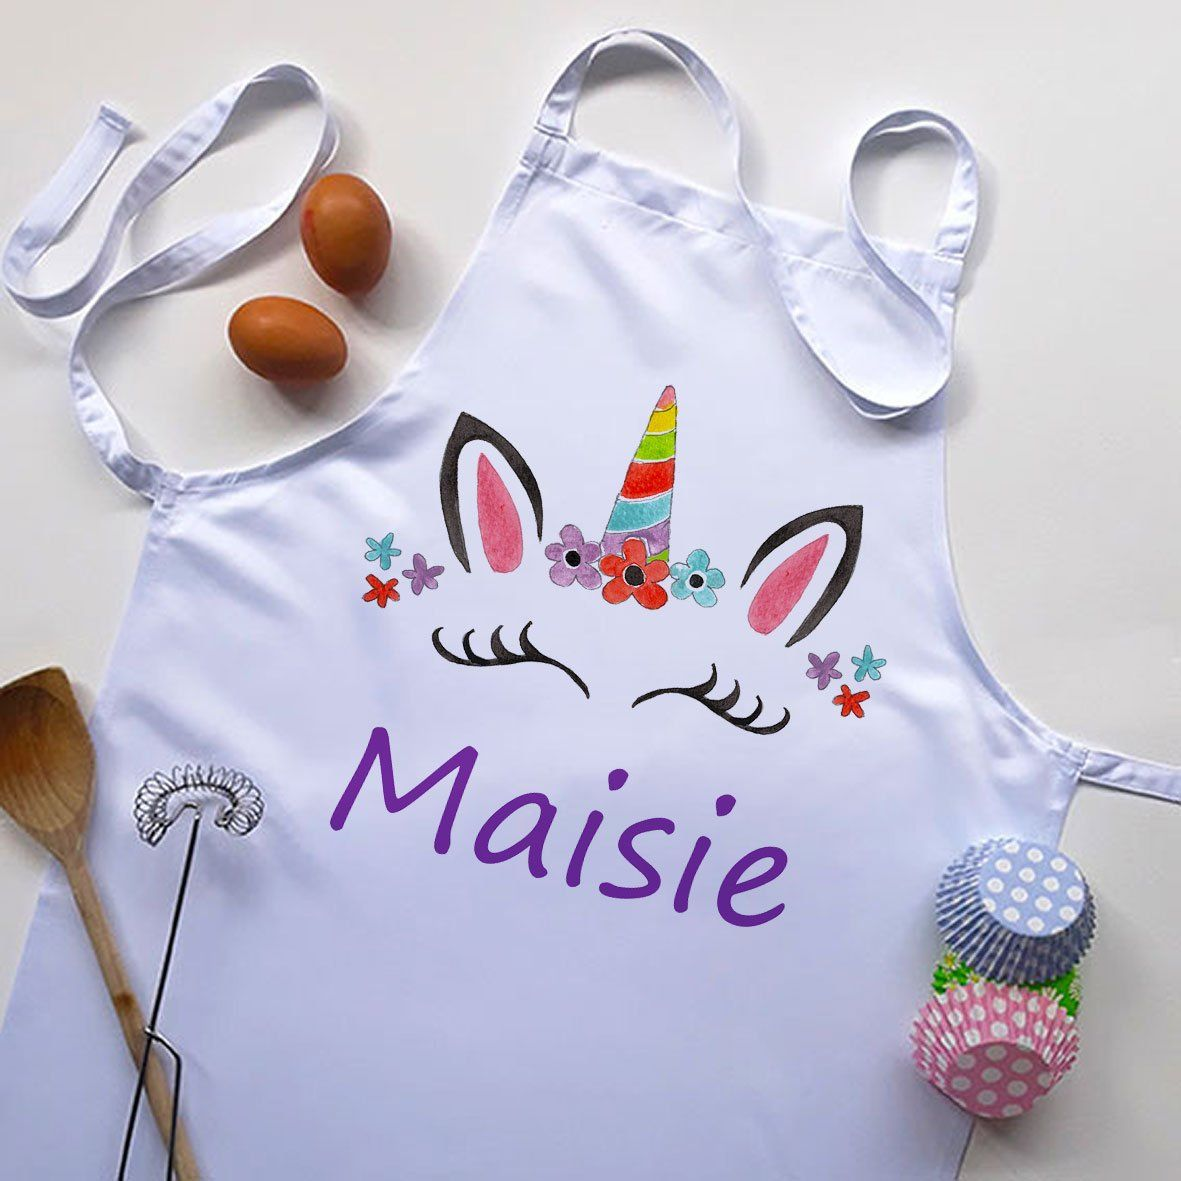 personalised aprons-Cooking Gifts-Kitchen Gifts-Kids Cooking Gift-Apron & Utensils